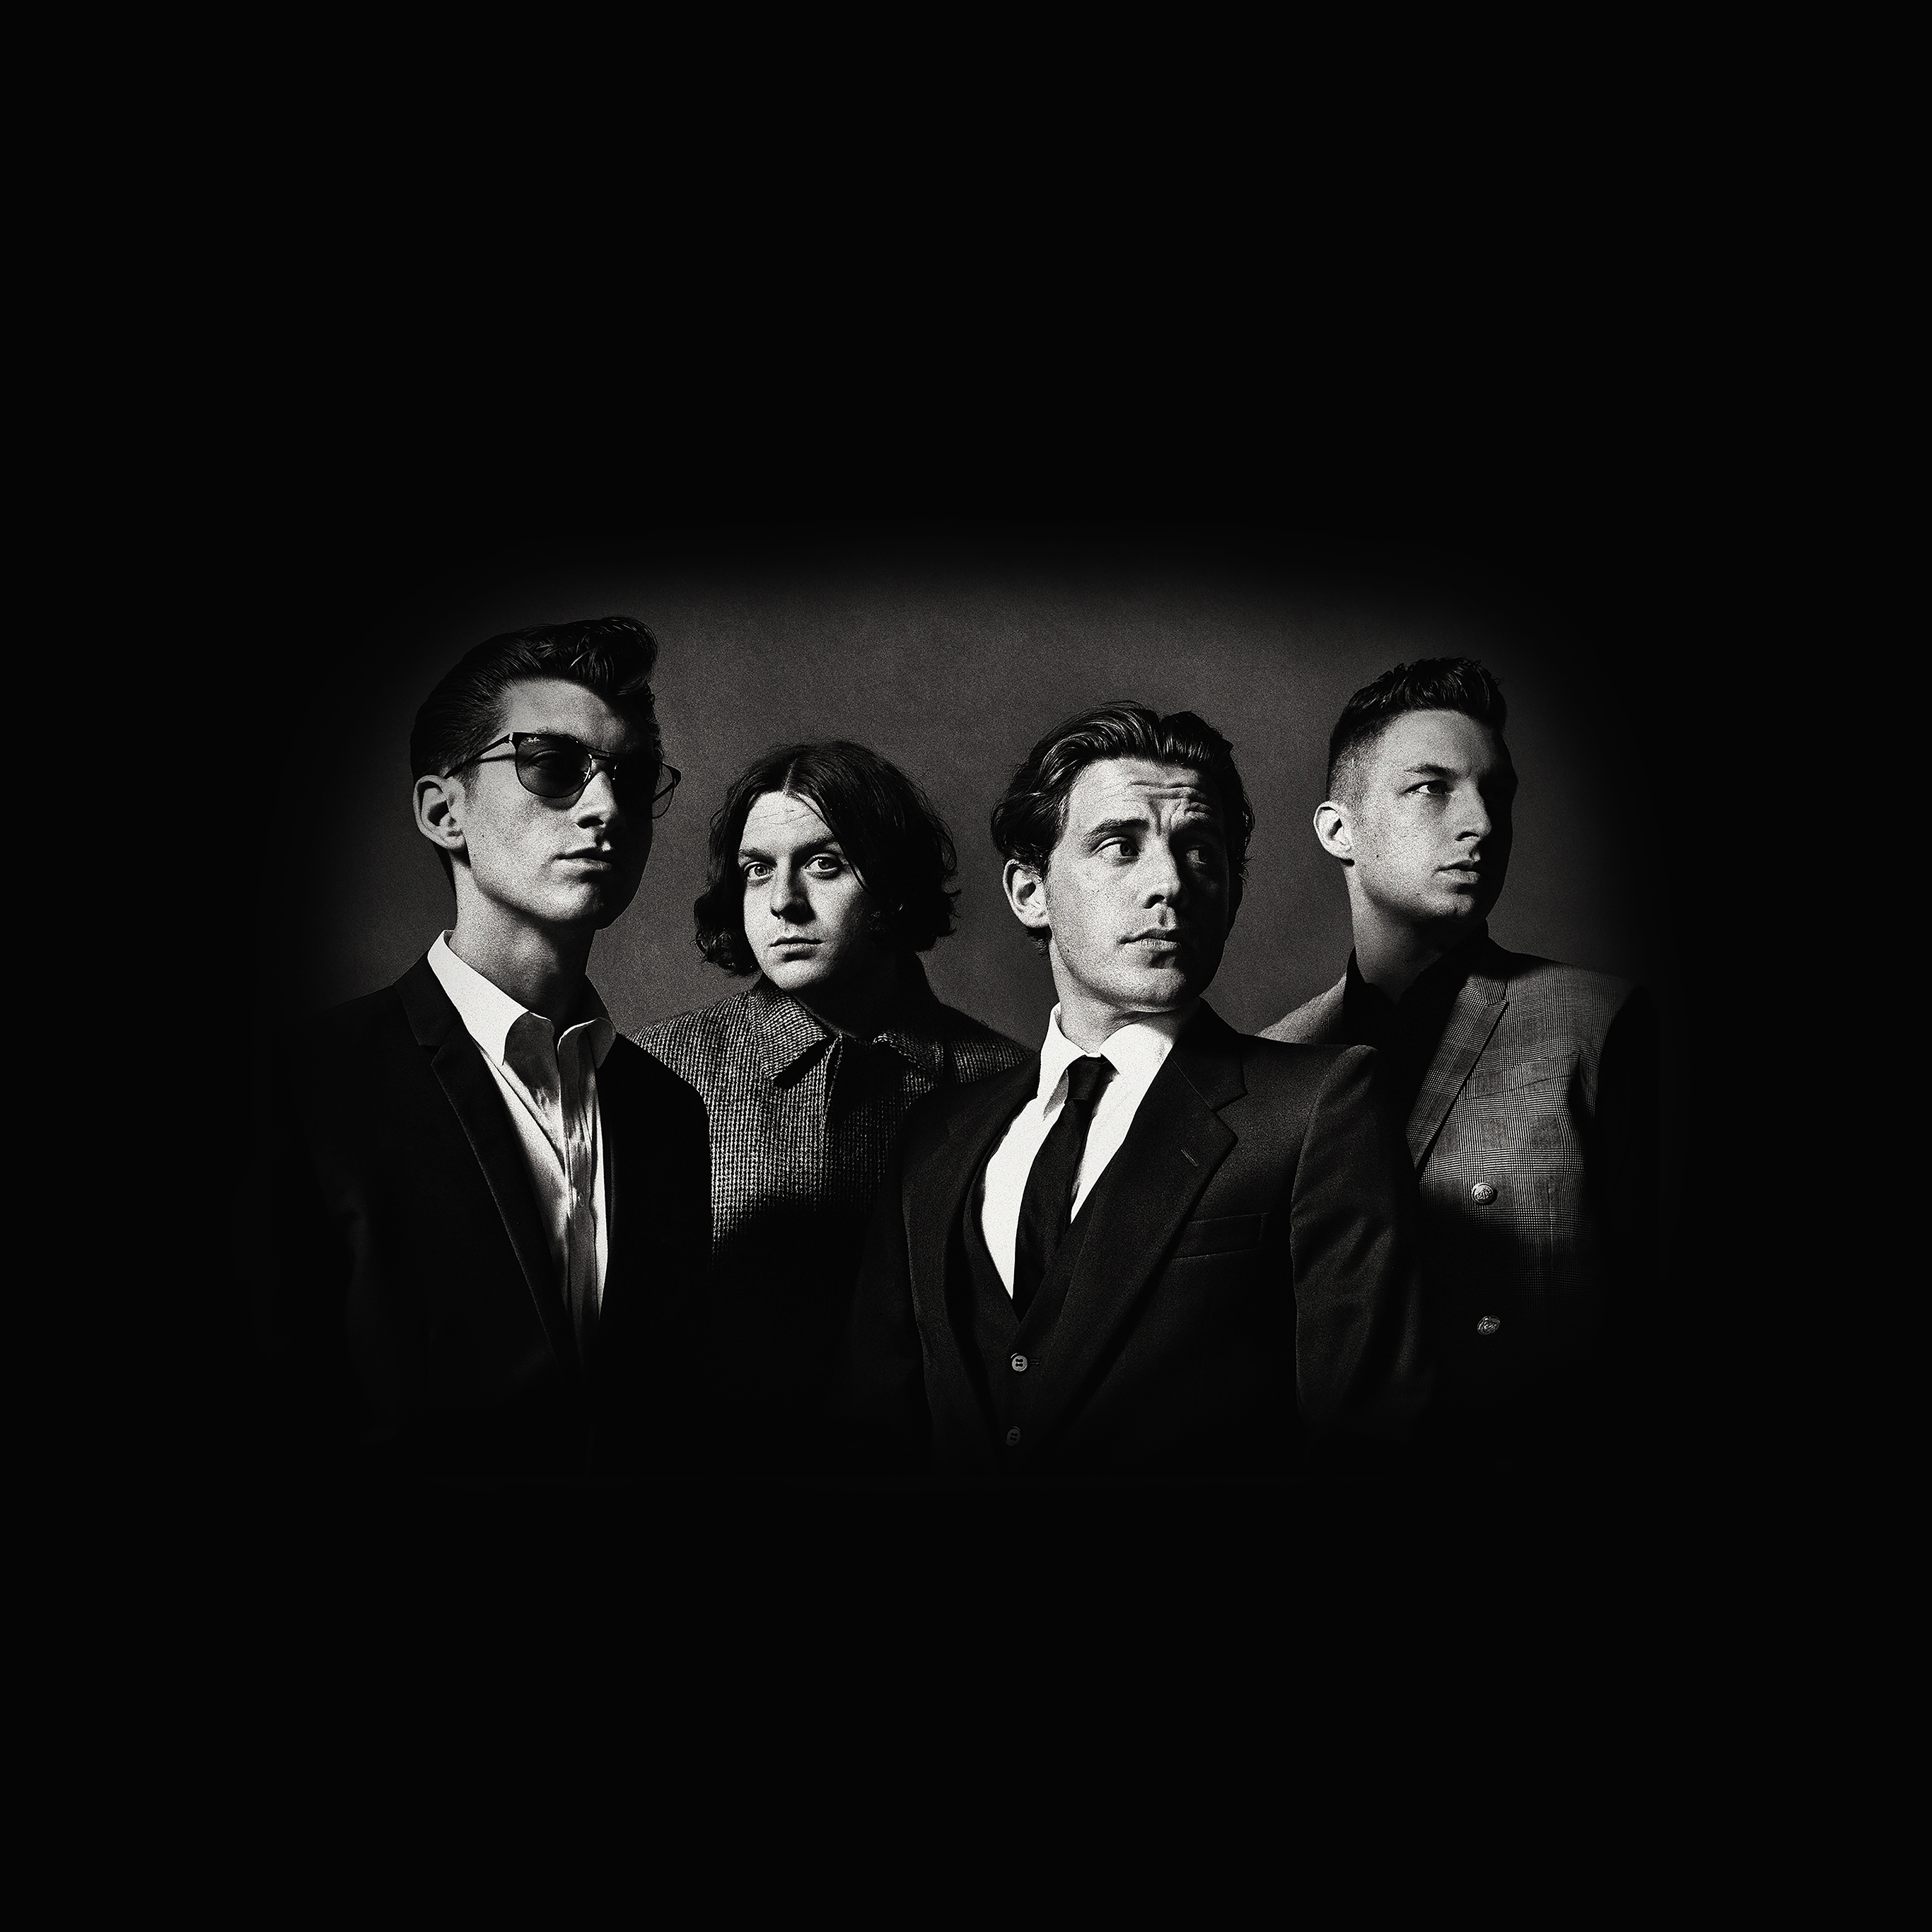 Classic Car Computer Wallpaper Hc49 Arctic Monkeys English Indie Rock Band Music Papers Co